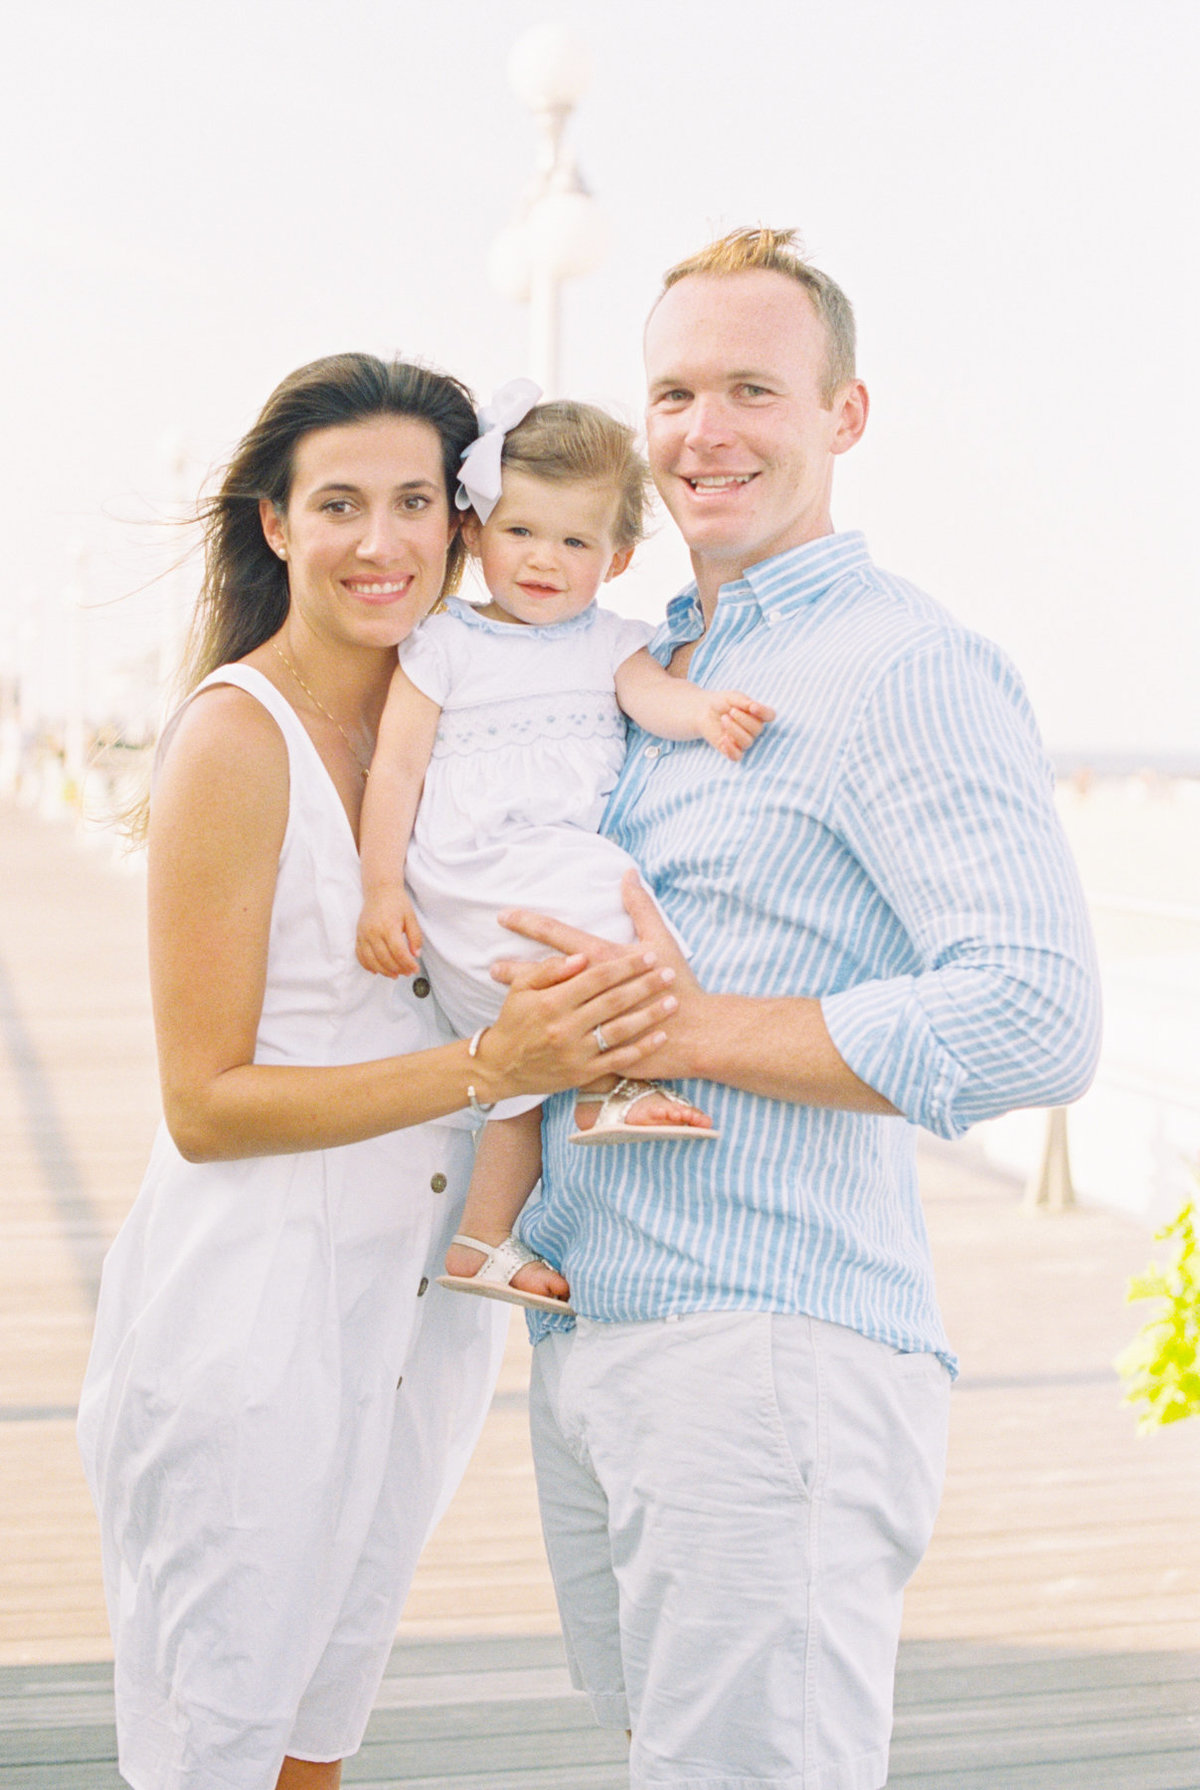 Michelle Behre Photography NJ Fine Art Photographer Seaside Family Lifestyle Family Portrait Session in Avon-by-the-Sea-69